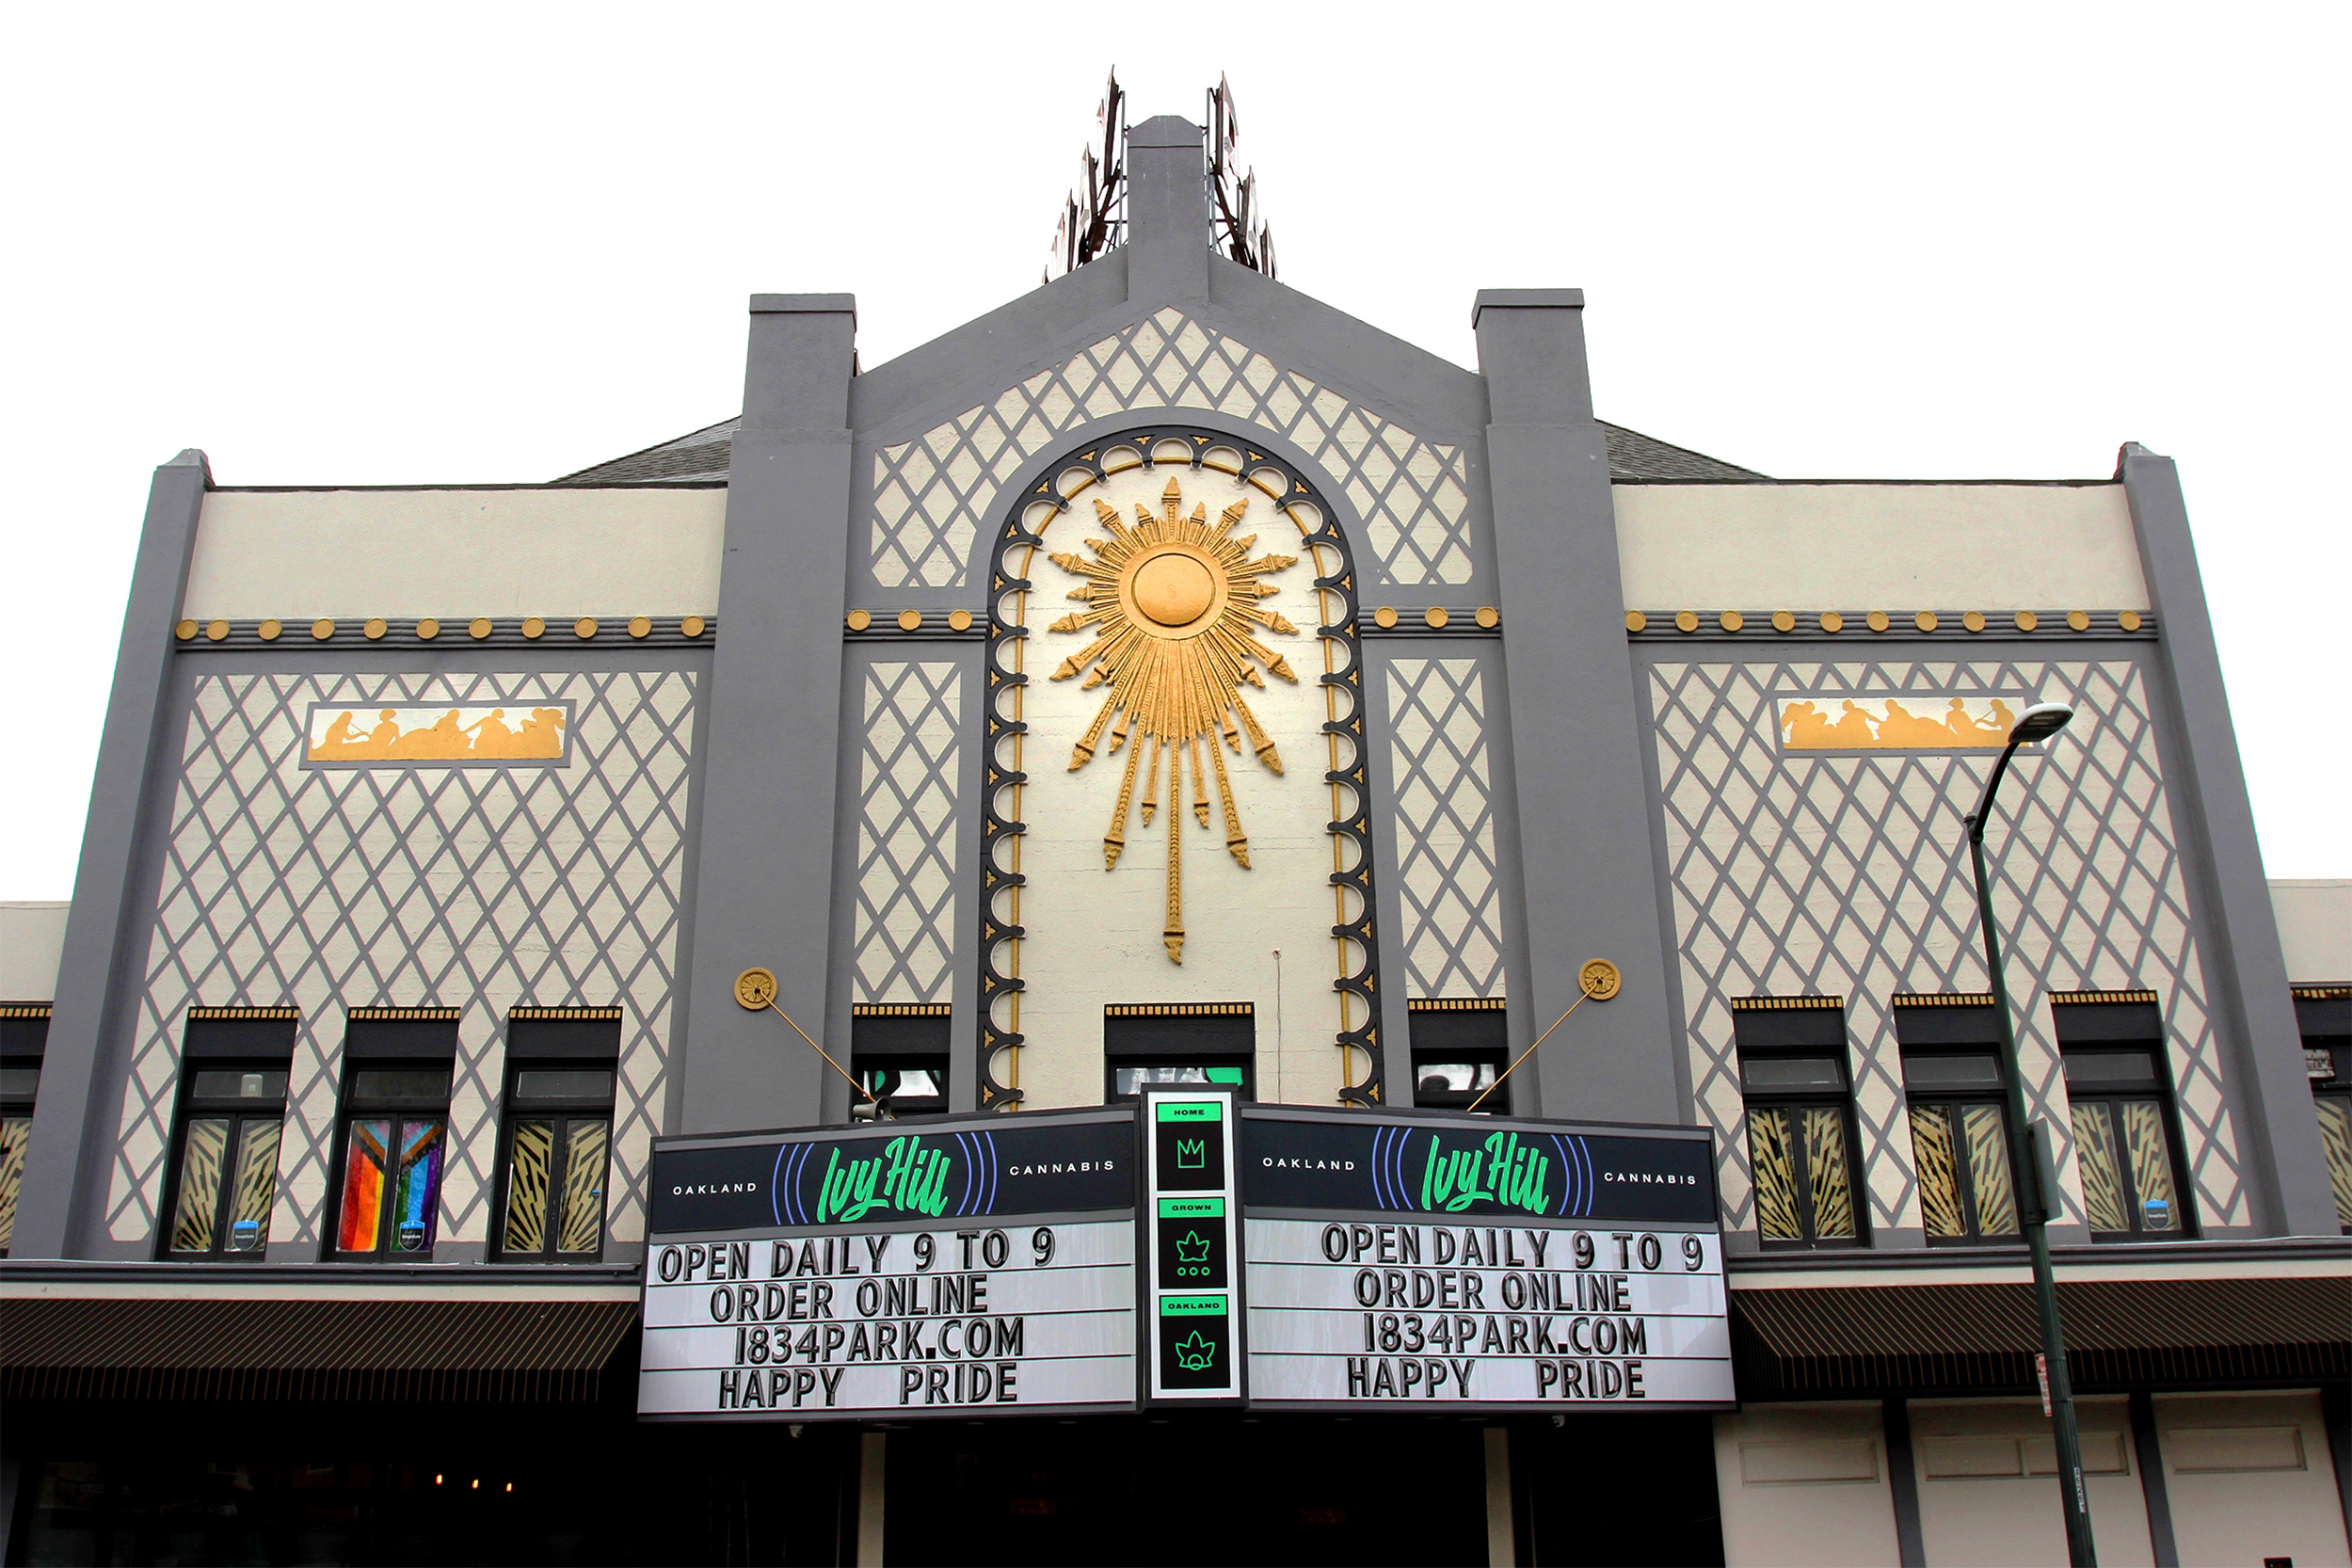 Exterior image of newly restored Parkway facade showcasing centered marquee